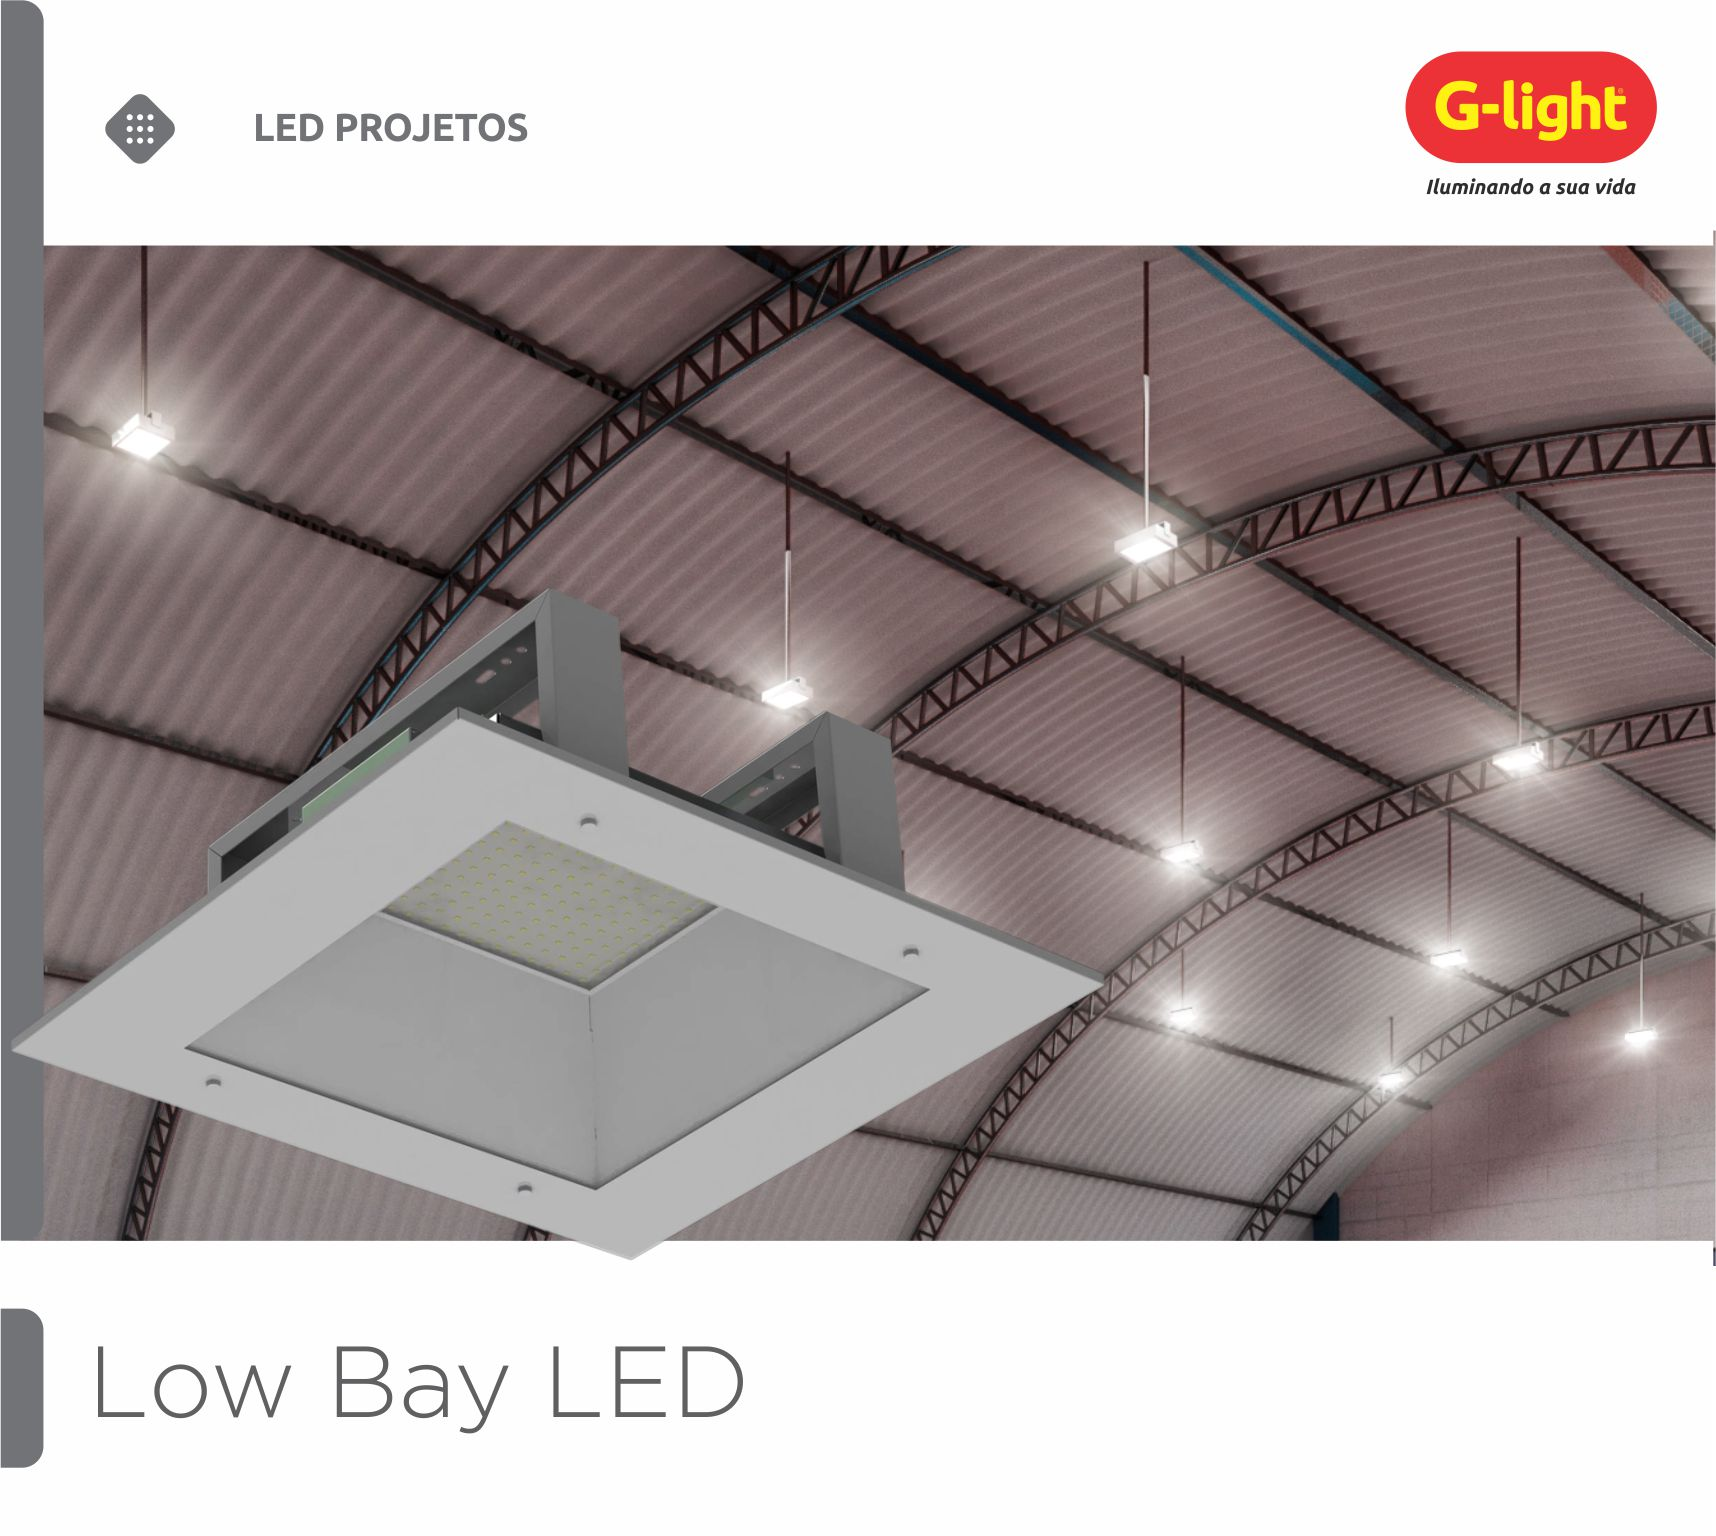 Low Bay LED